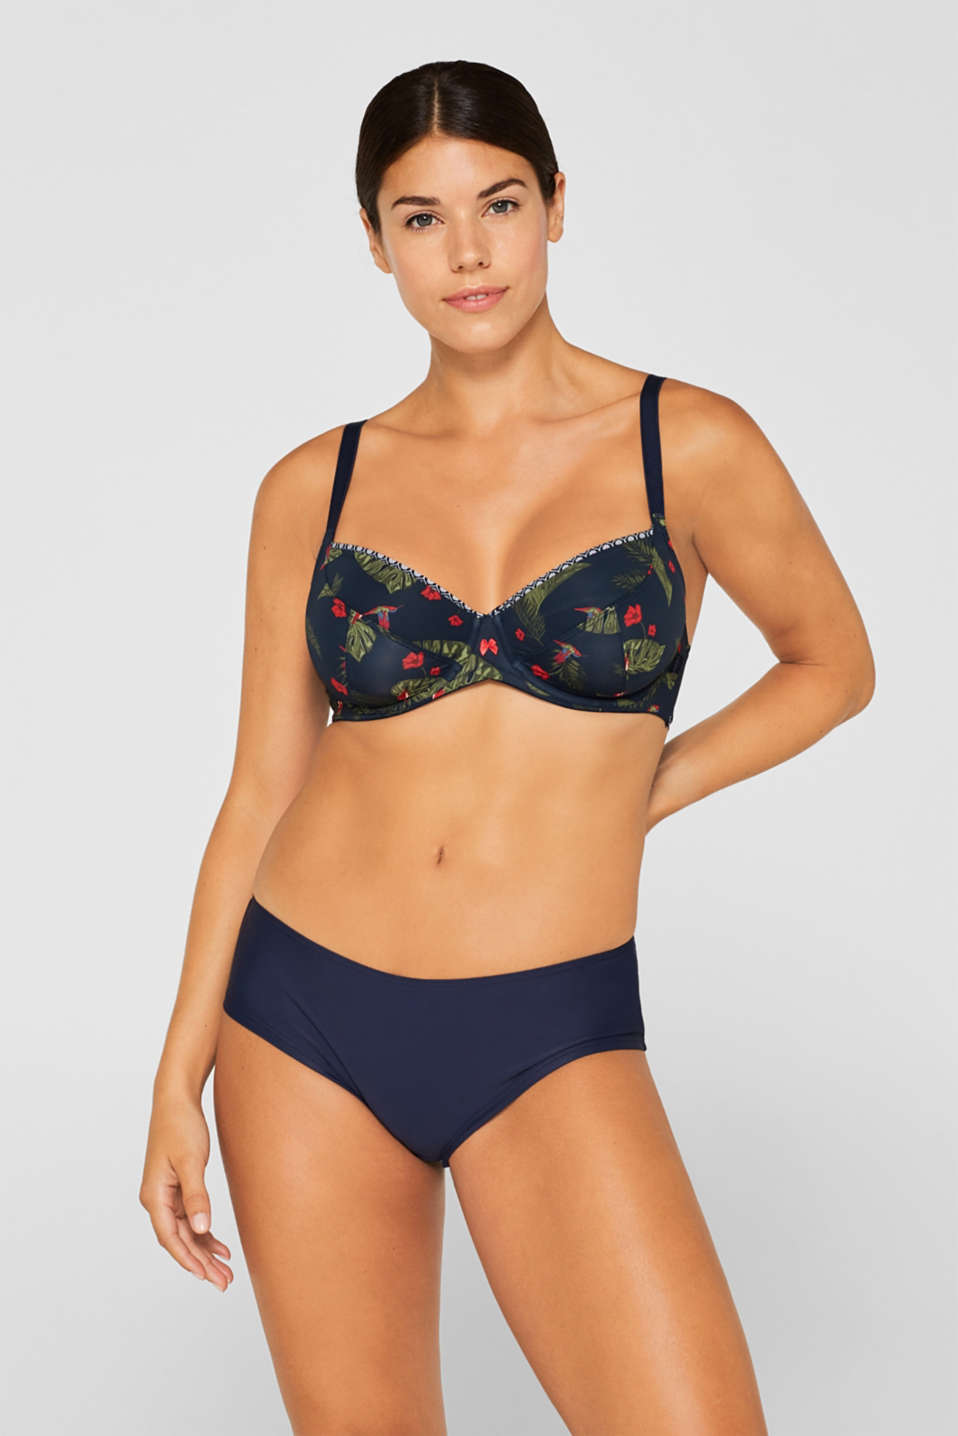 Esprit - Unpadded underwire bra with a print, for larger cup sizes